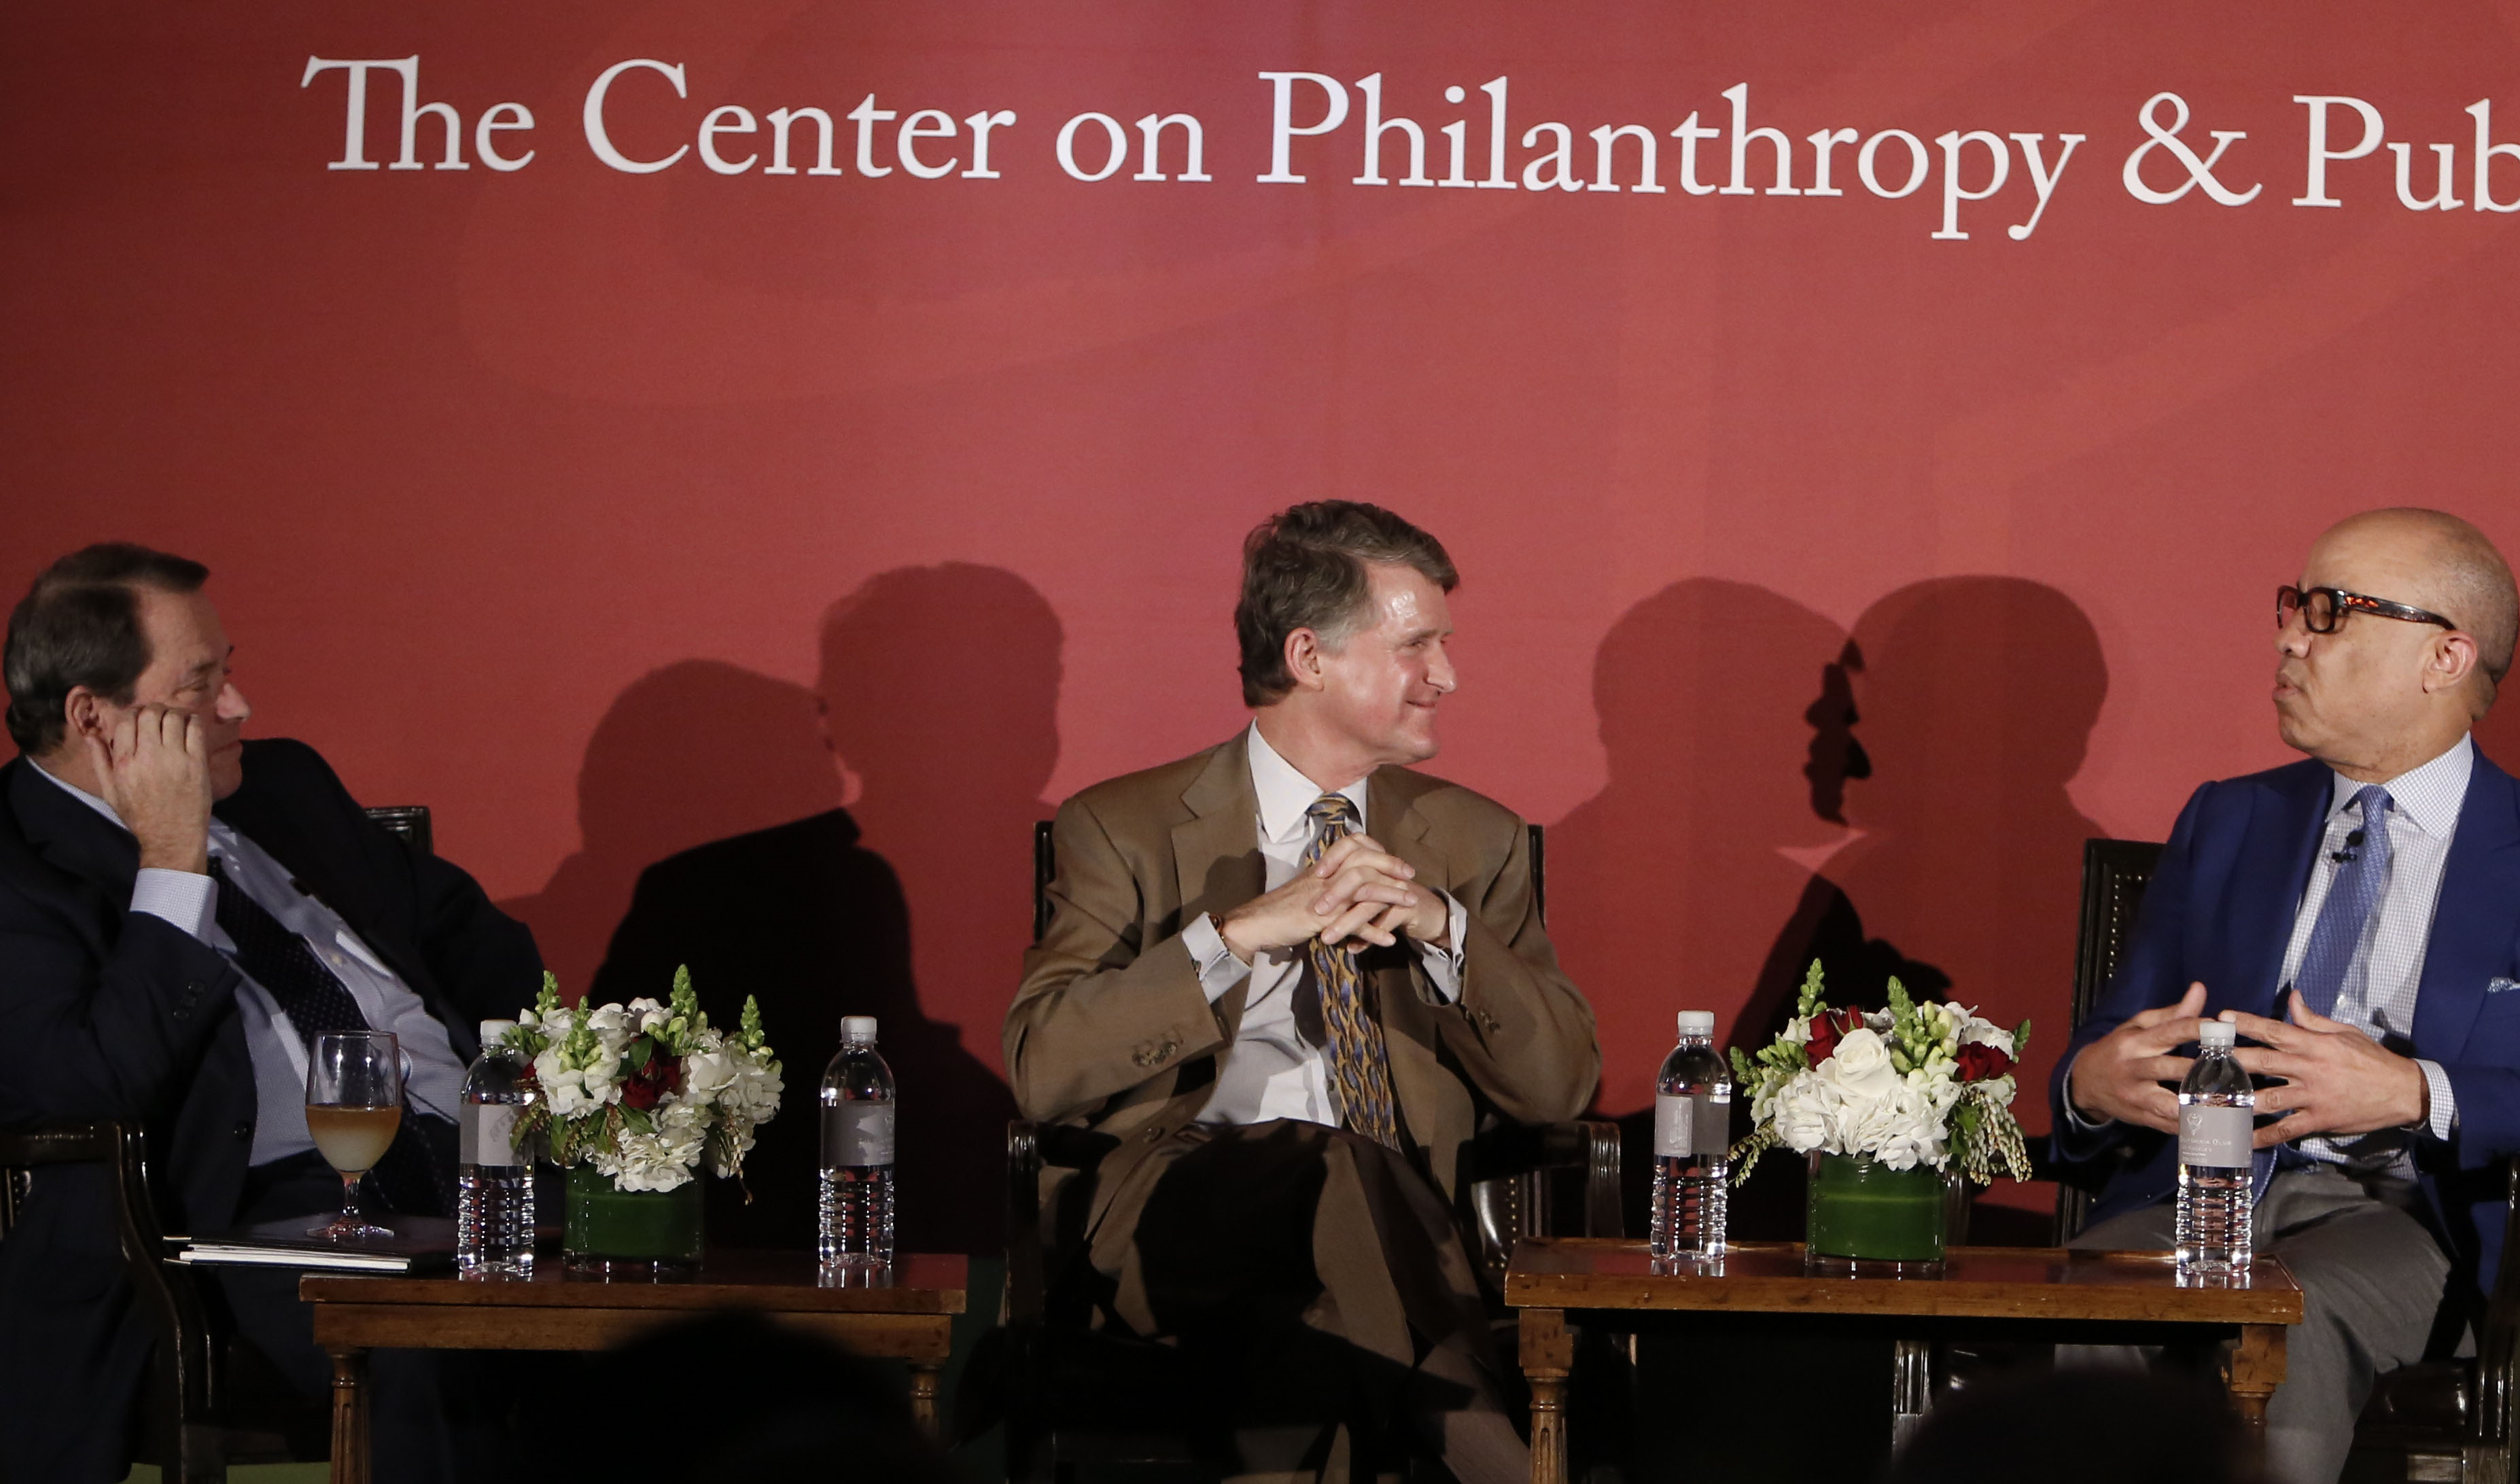 Judge Gerald Rosen, Rip Rapson, and Darren Walker Discuss Detroit's Grand Bargain